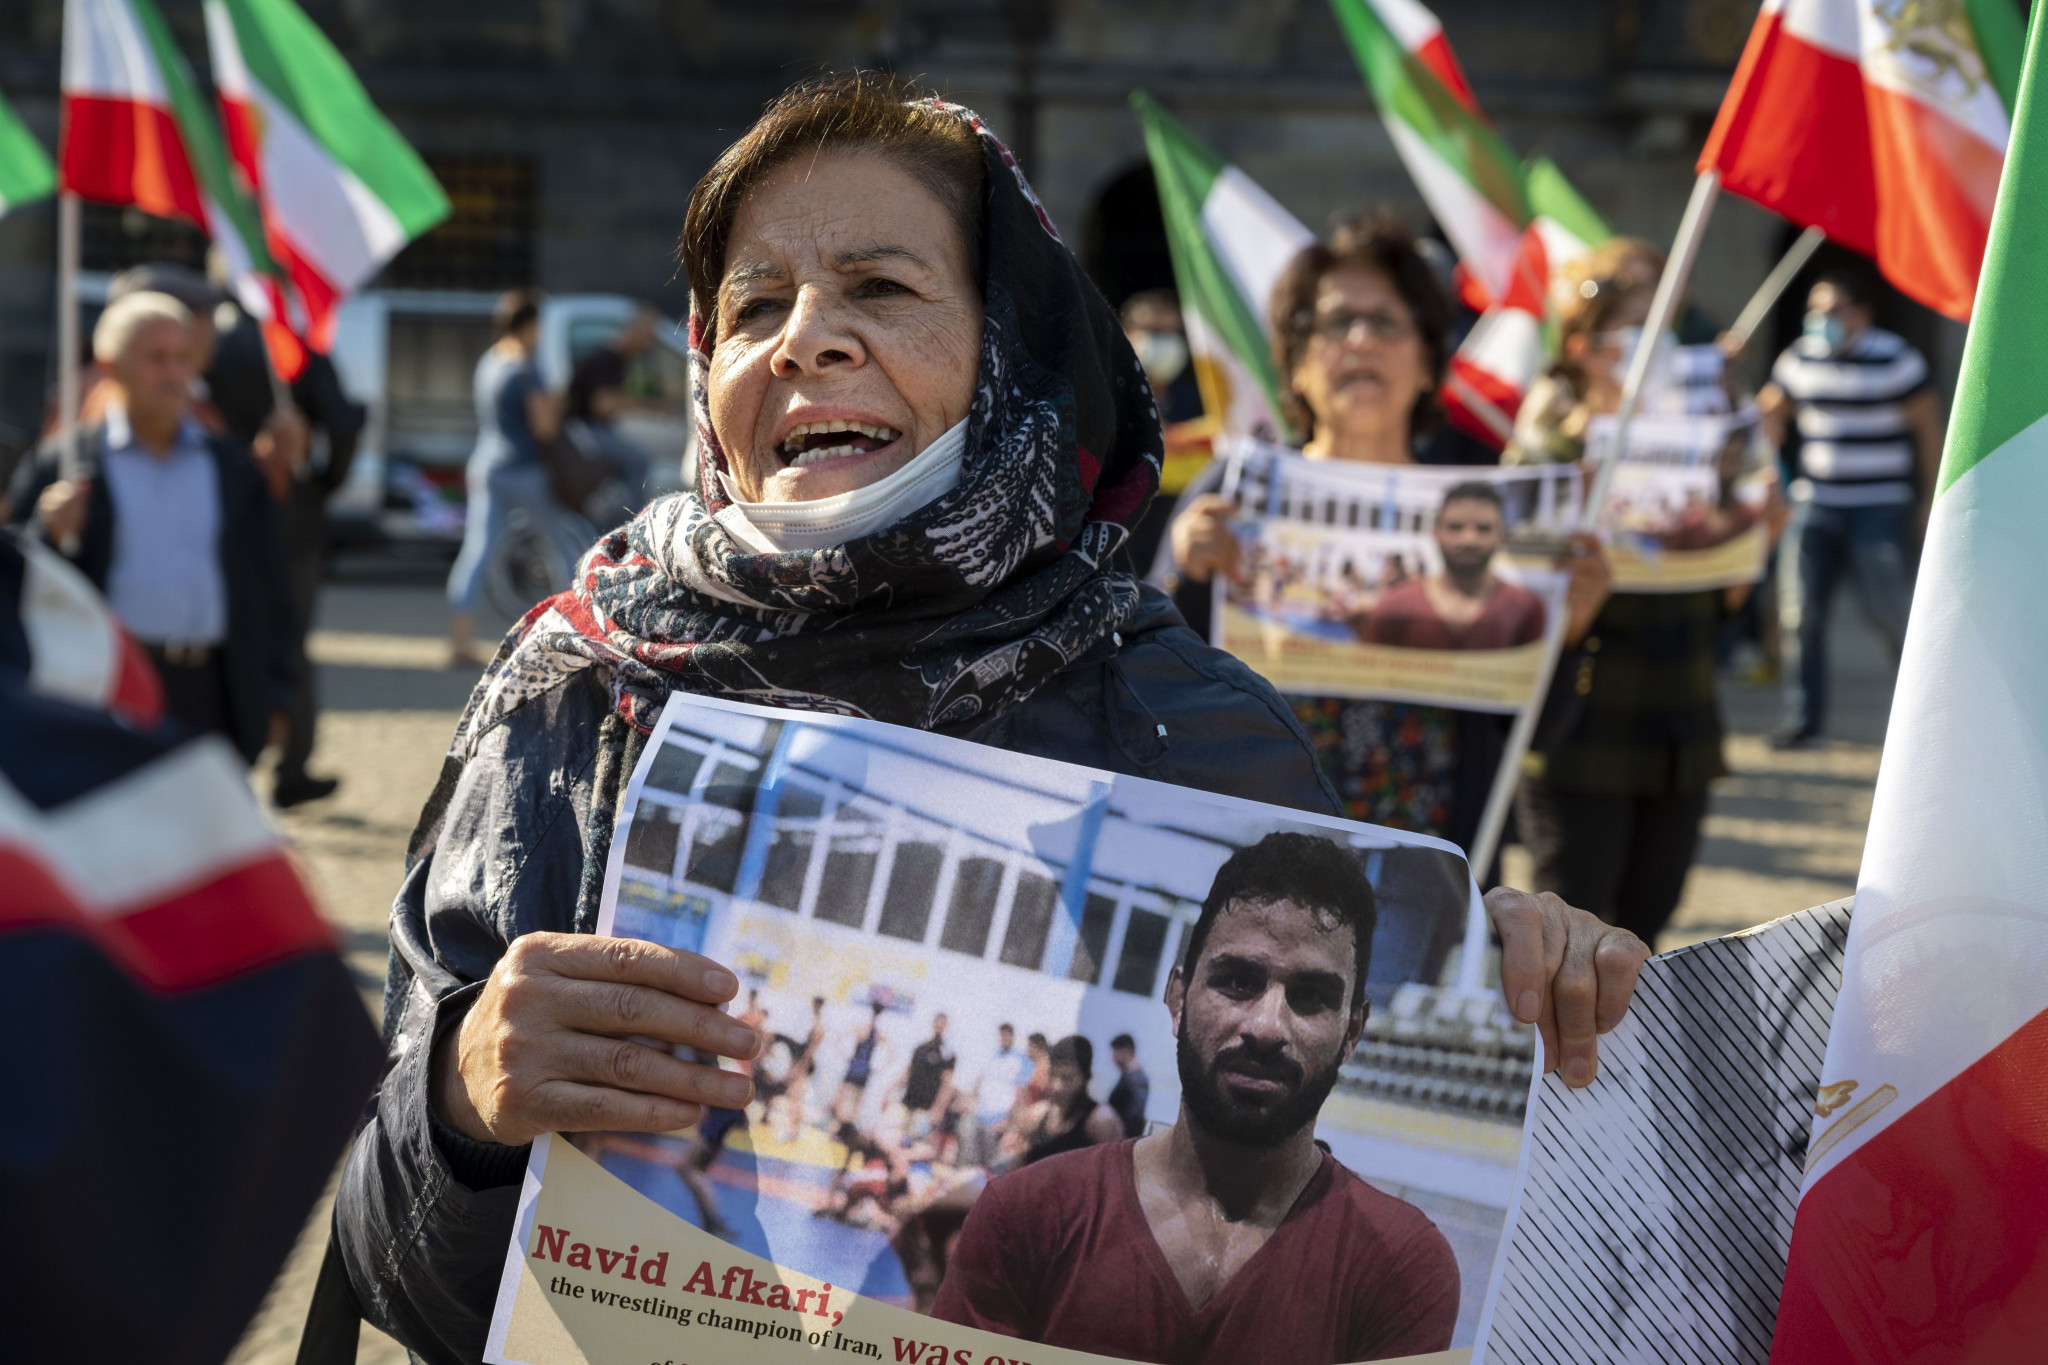 A demonstrator holds an image of Navid Afkari at a protest against the Iranian regime held in Dutch city Amsterdam ©Getty Images